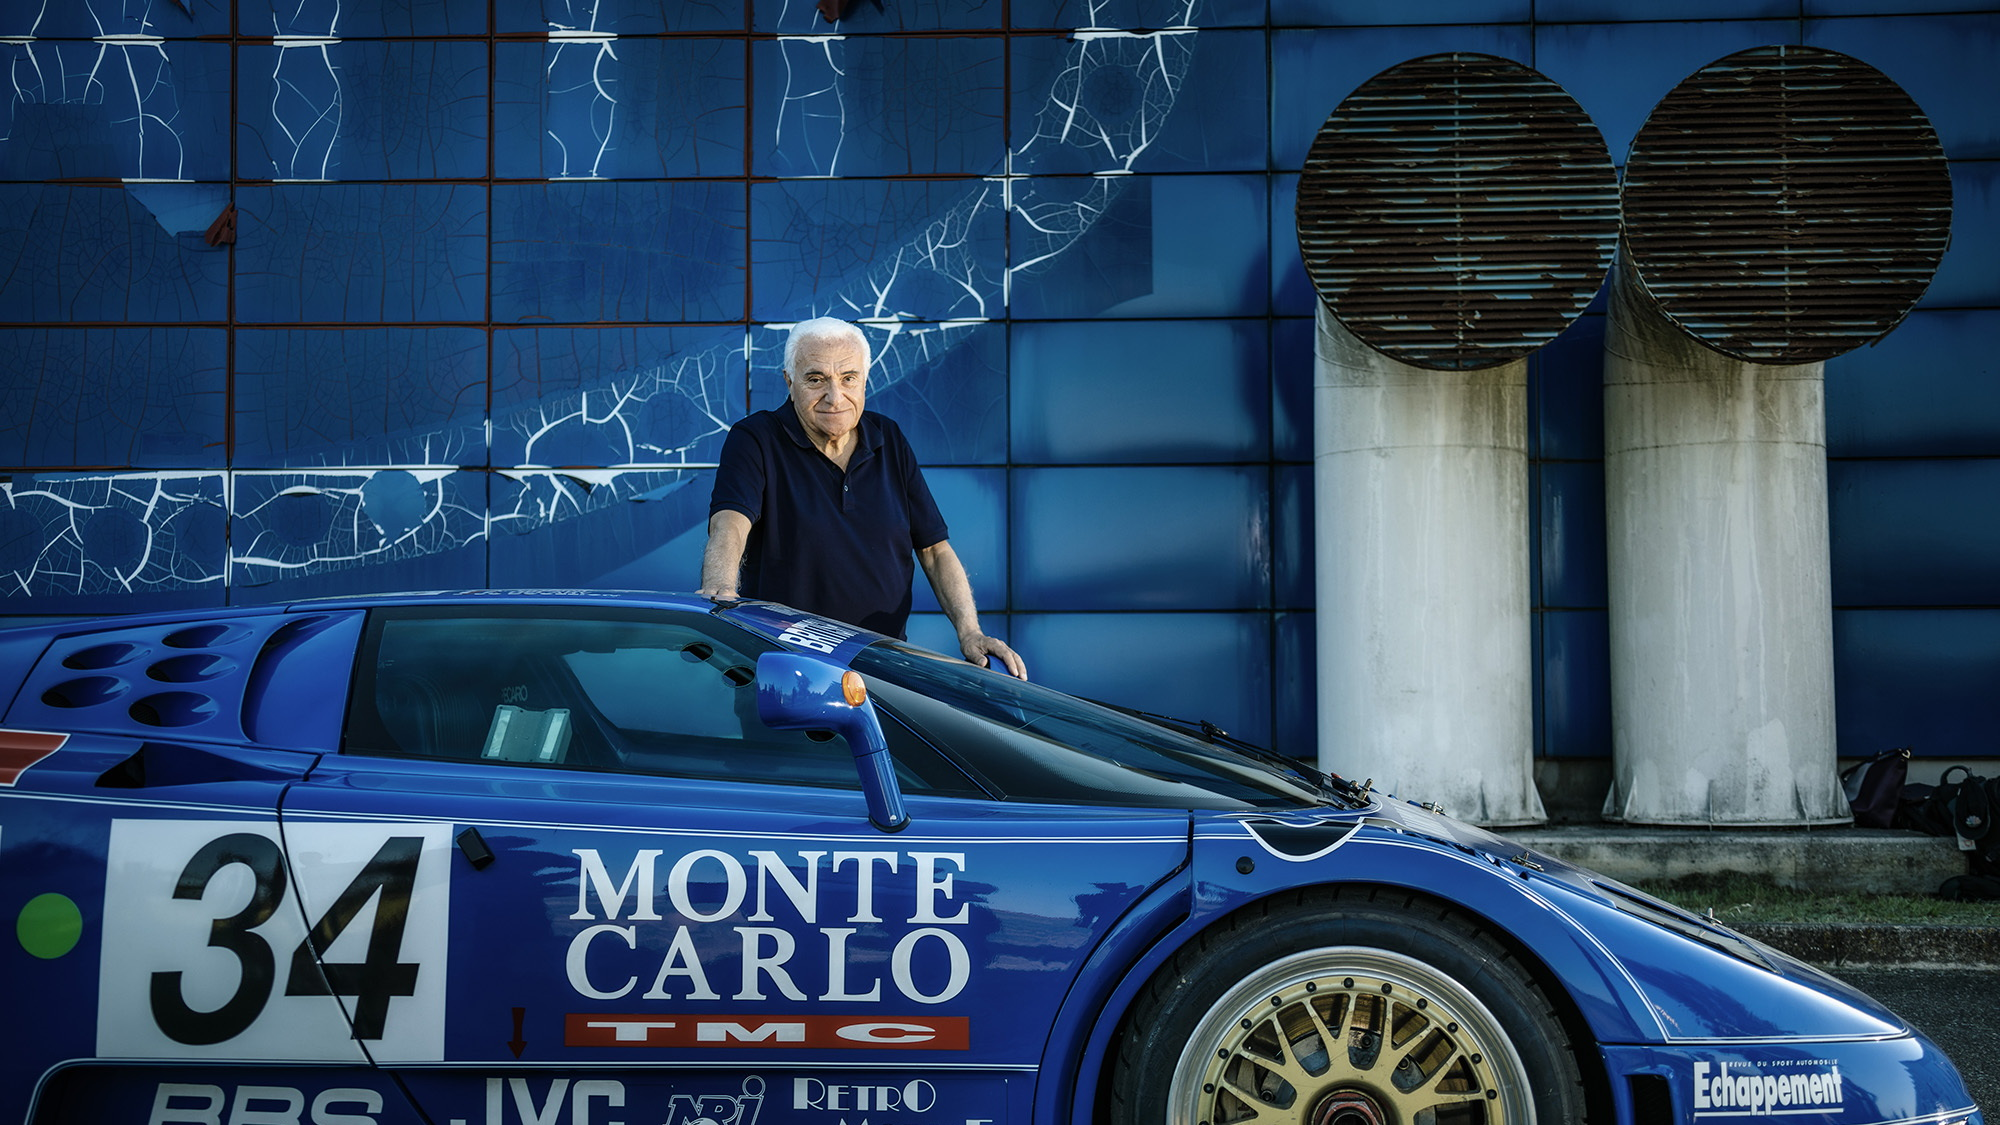 Romano Artioli with the 1994 Bugatti EB110 LM built for Le Mans